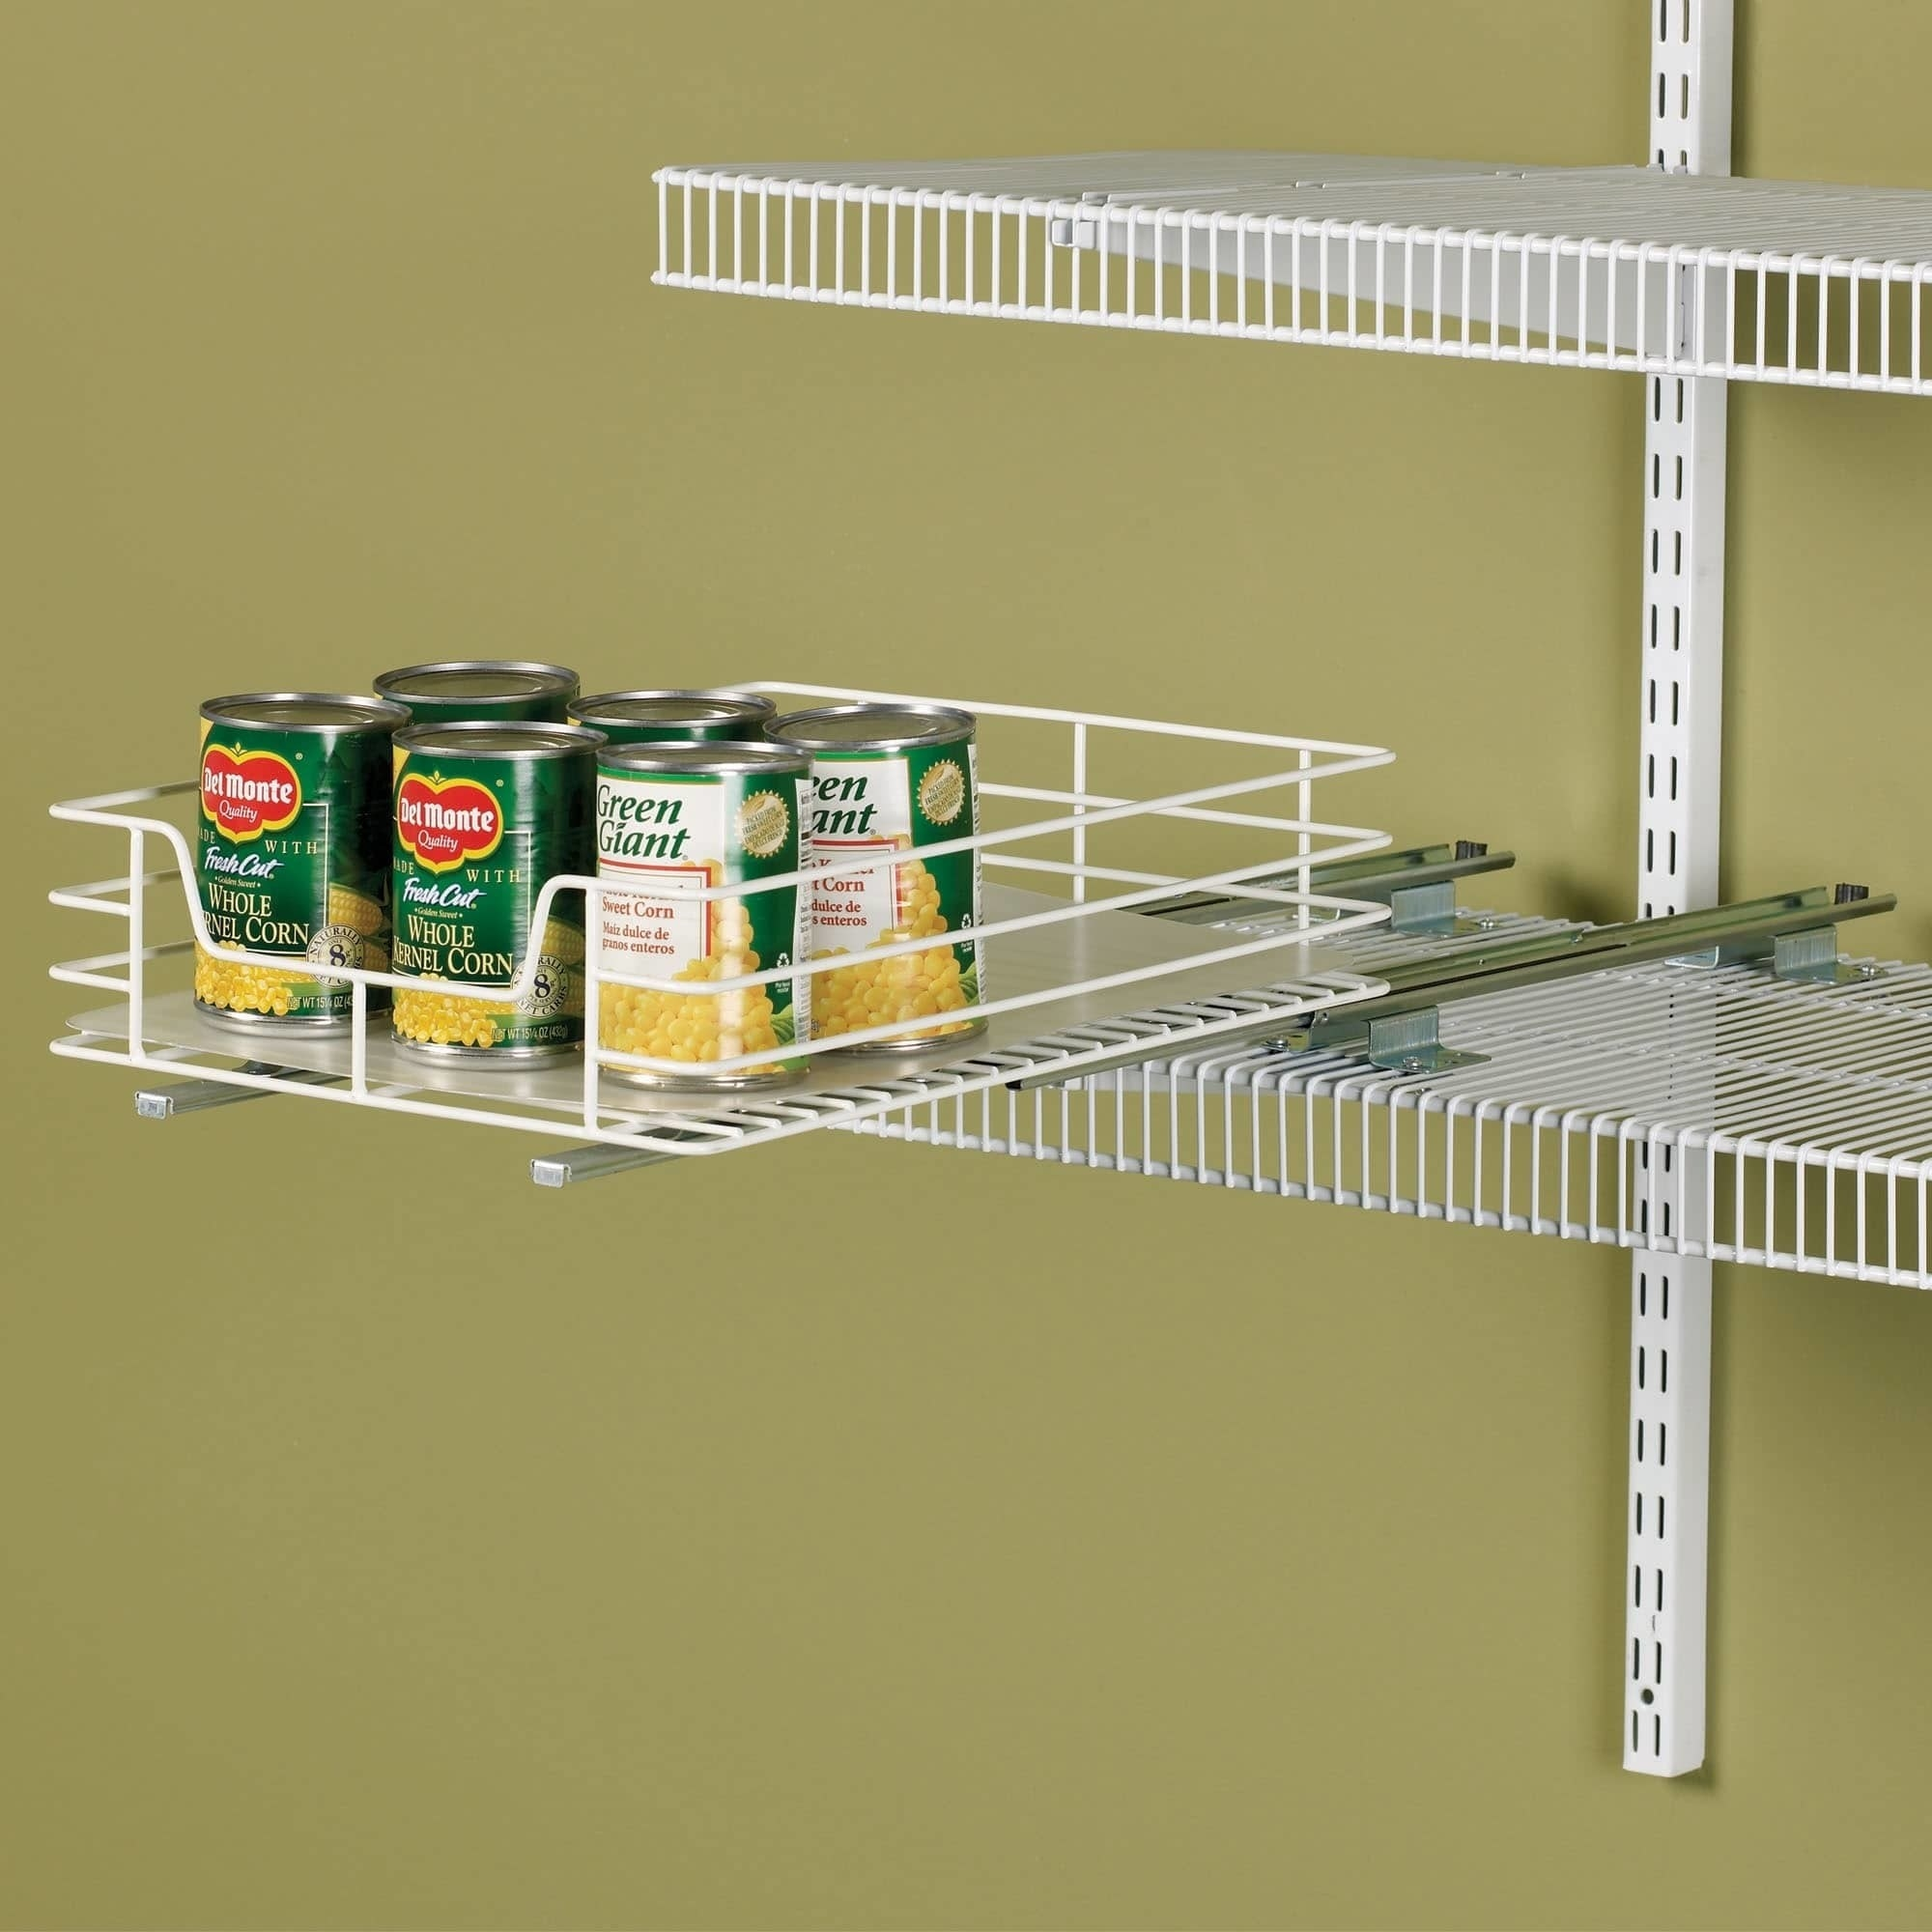 The metal wire can organizer